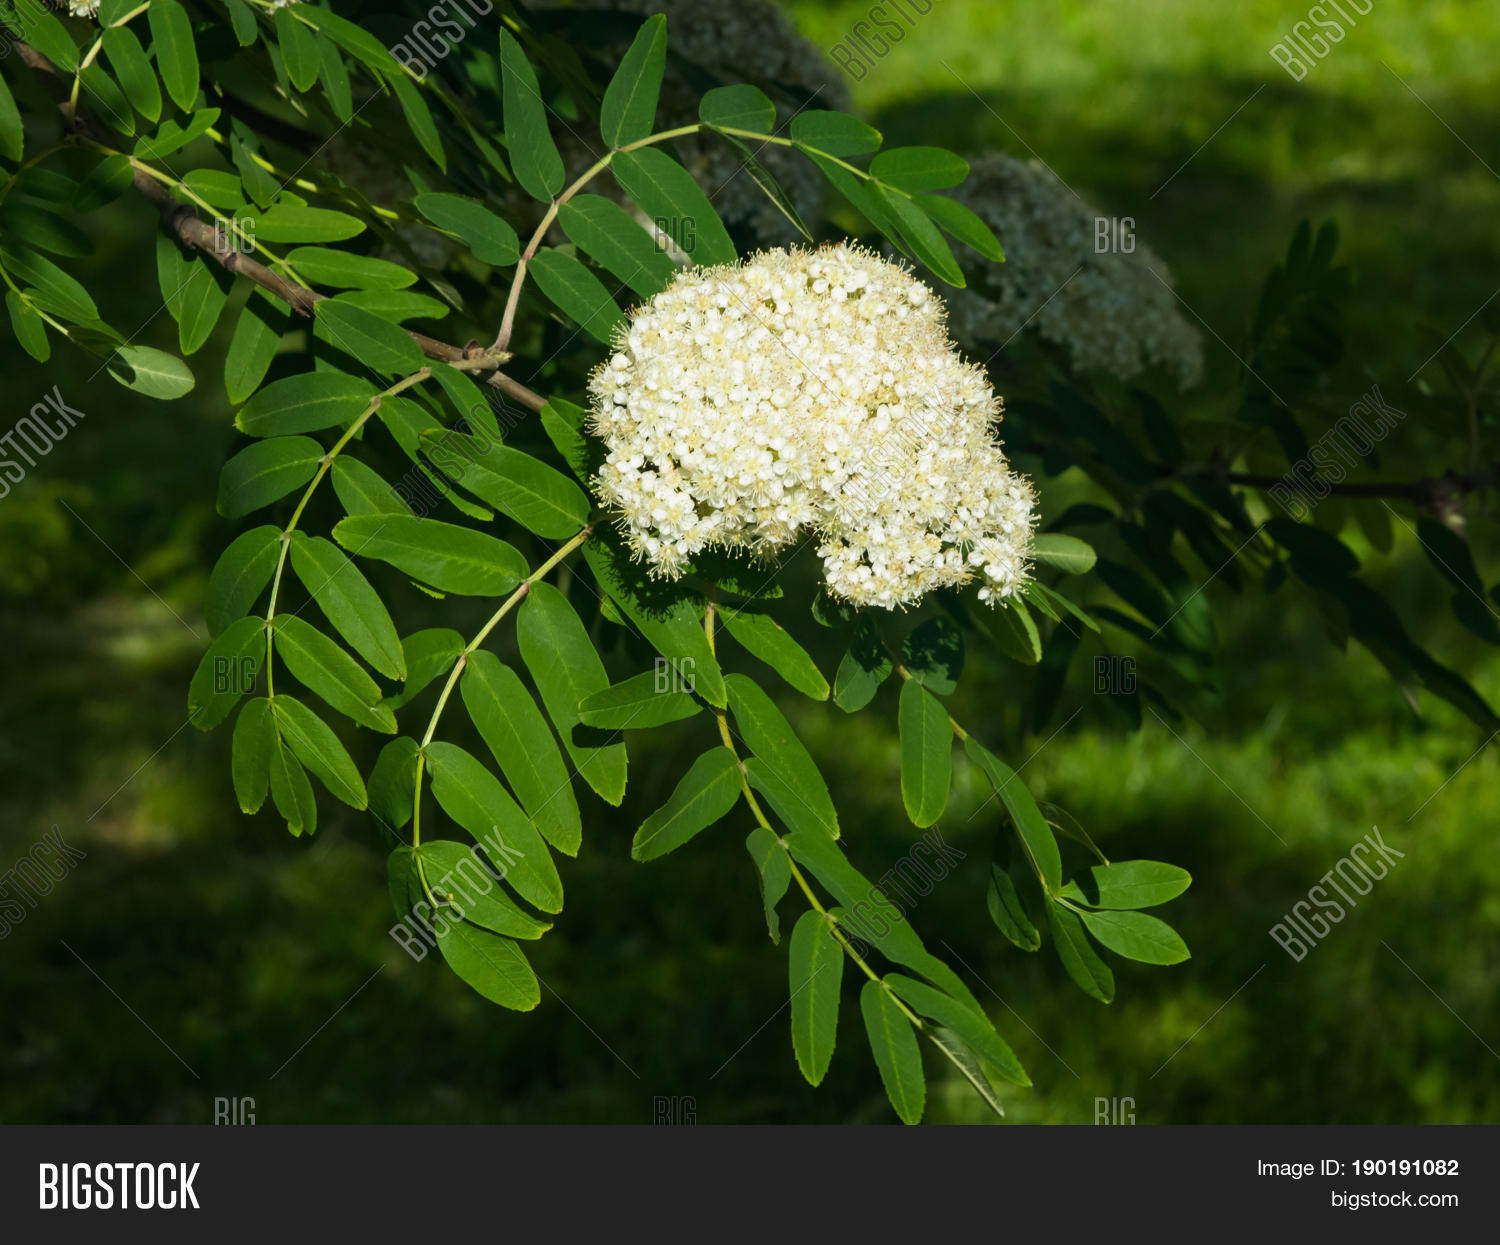 White flowers leaves image photo free trial bigstock white flowers and leaves of blossoming rowan tree sorbus aucuparia close up selective focus shallow mightylinksfo